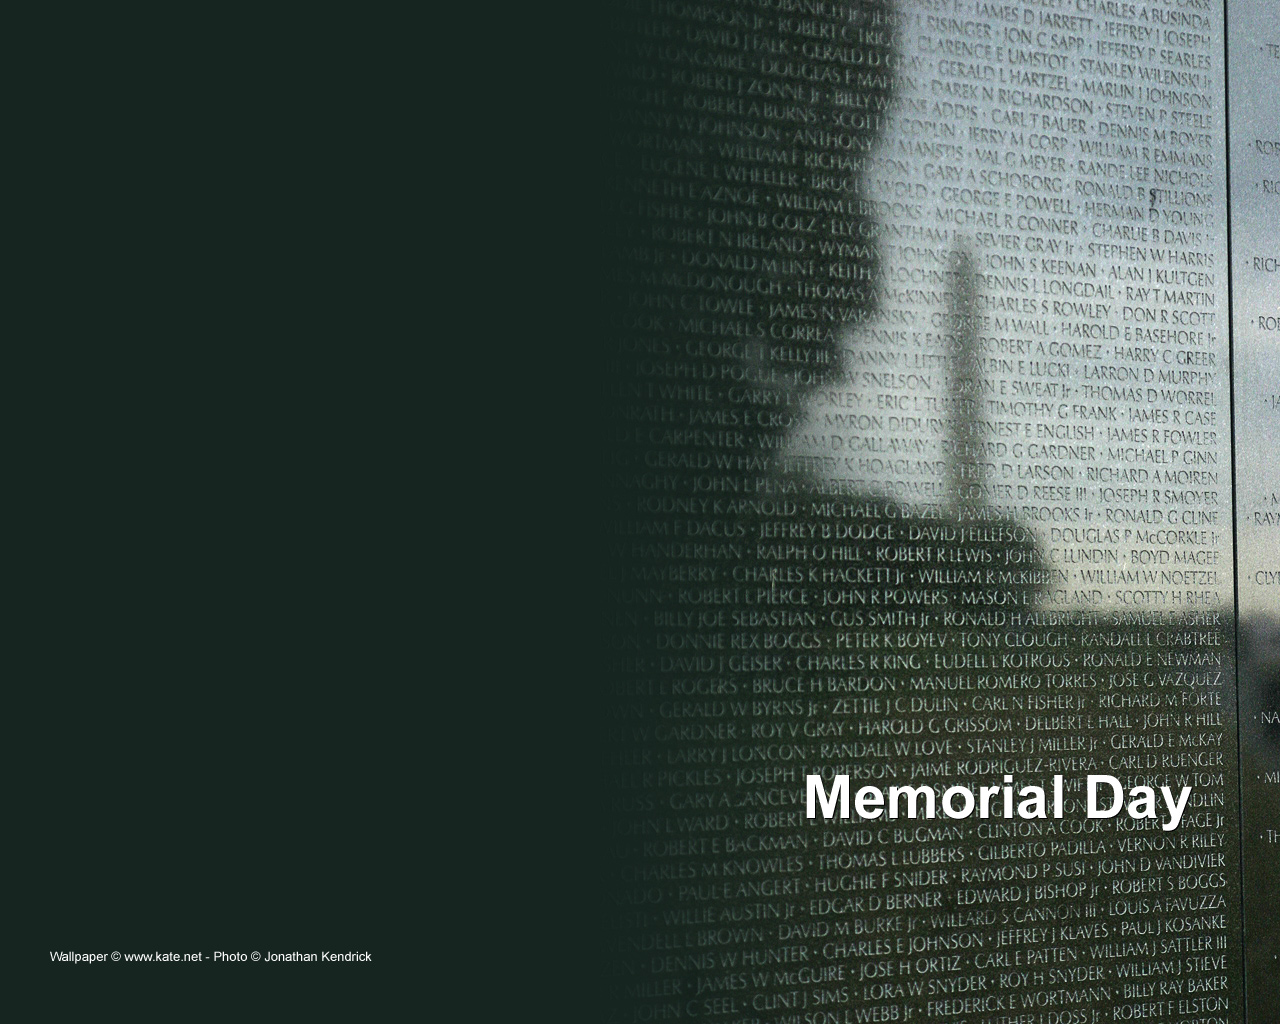 memorial day wallpapers by kate net